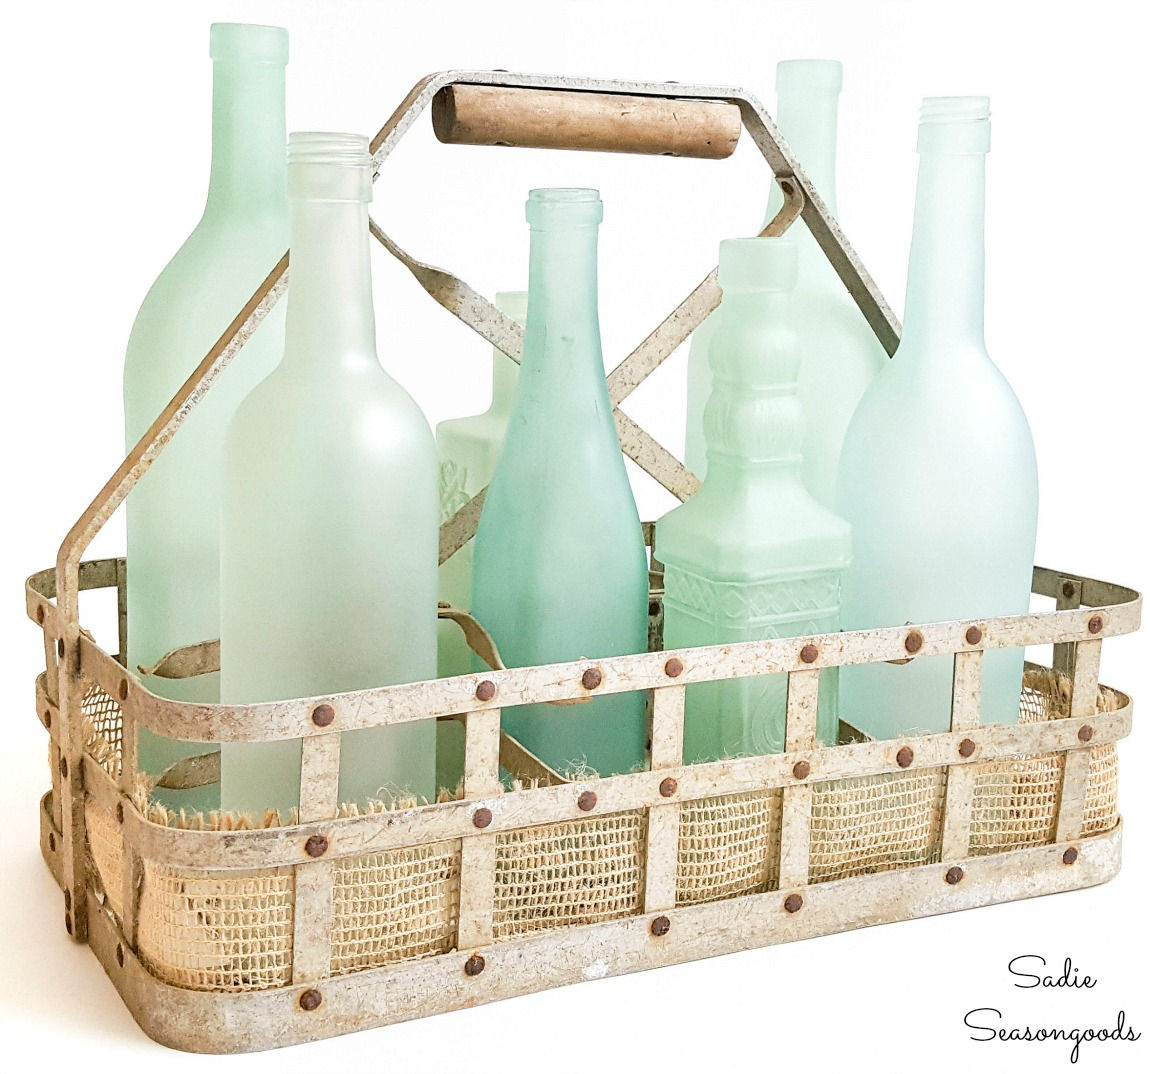 Sea glass bottles in a milk bottle basket as coastal decor